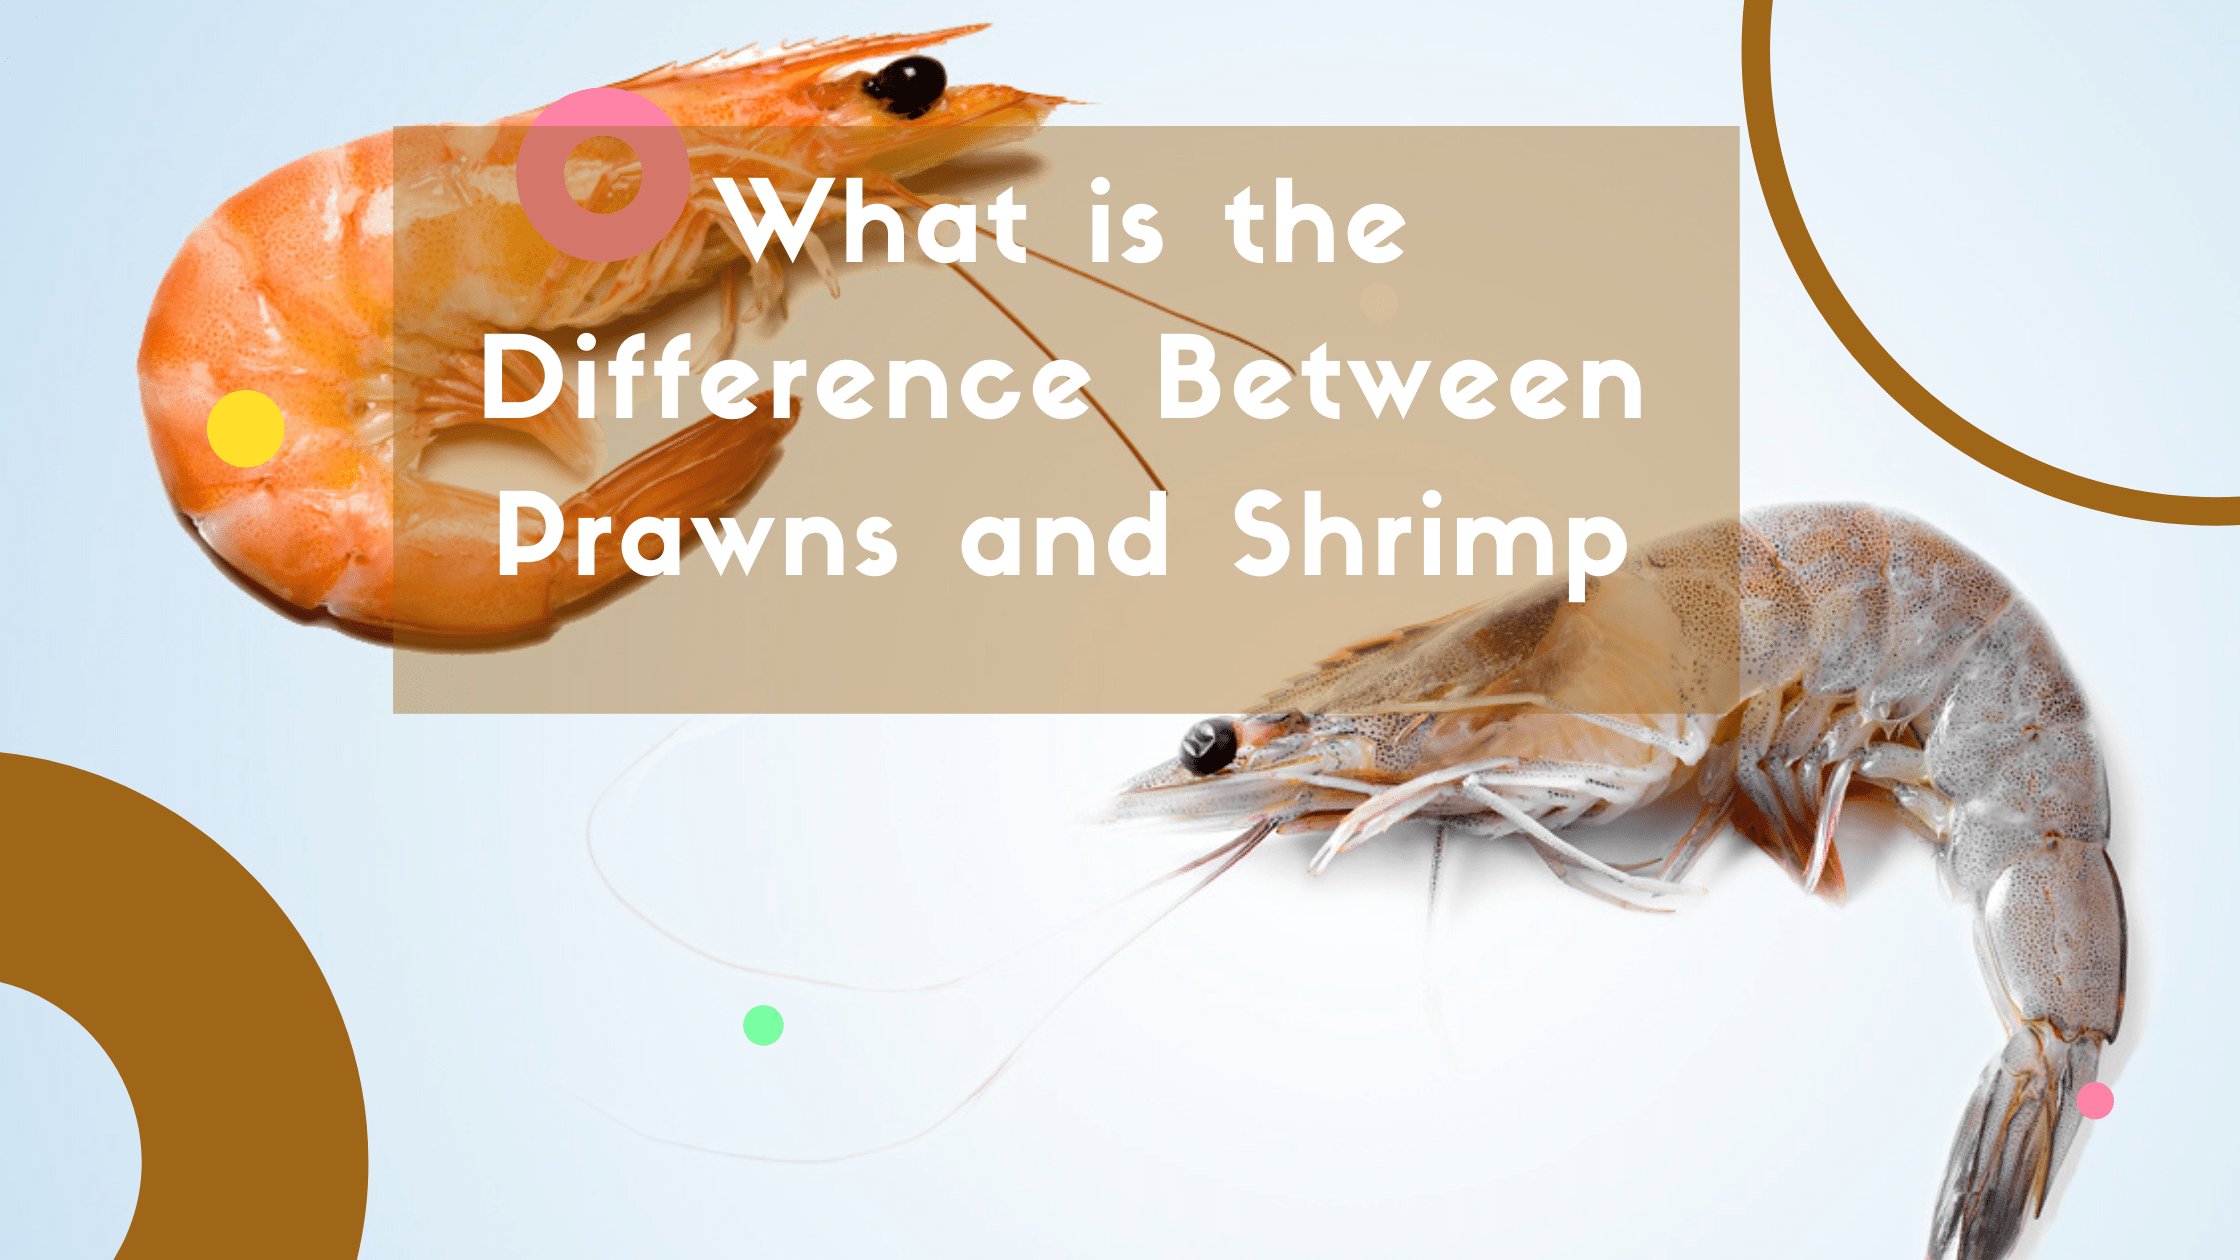 What is the Difference Between Prawns and Shrimp